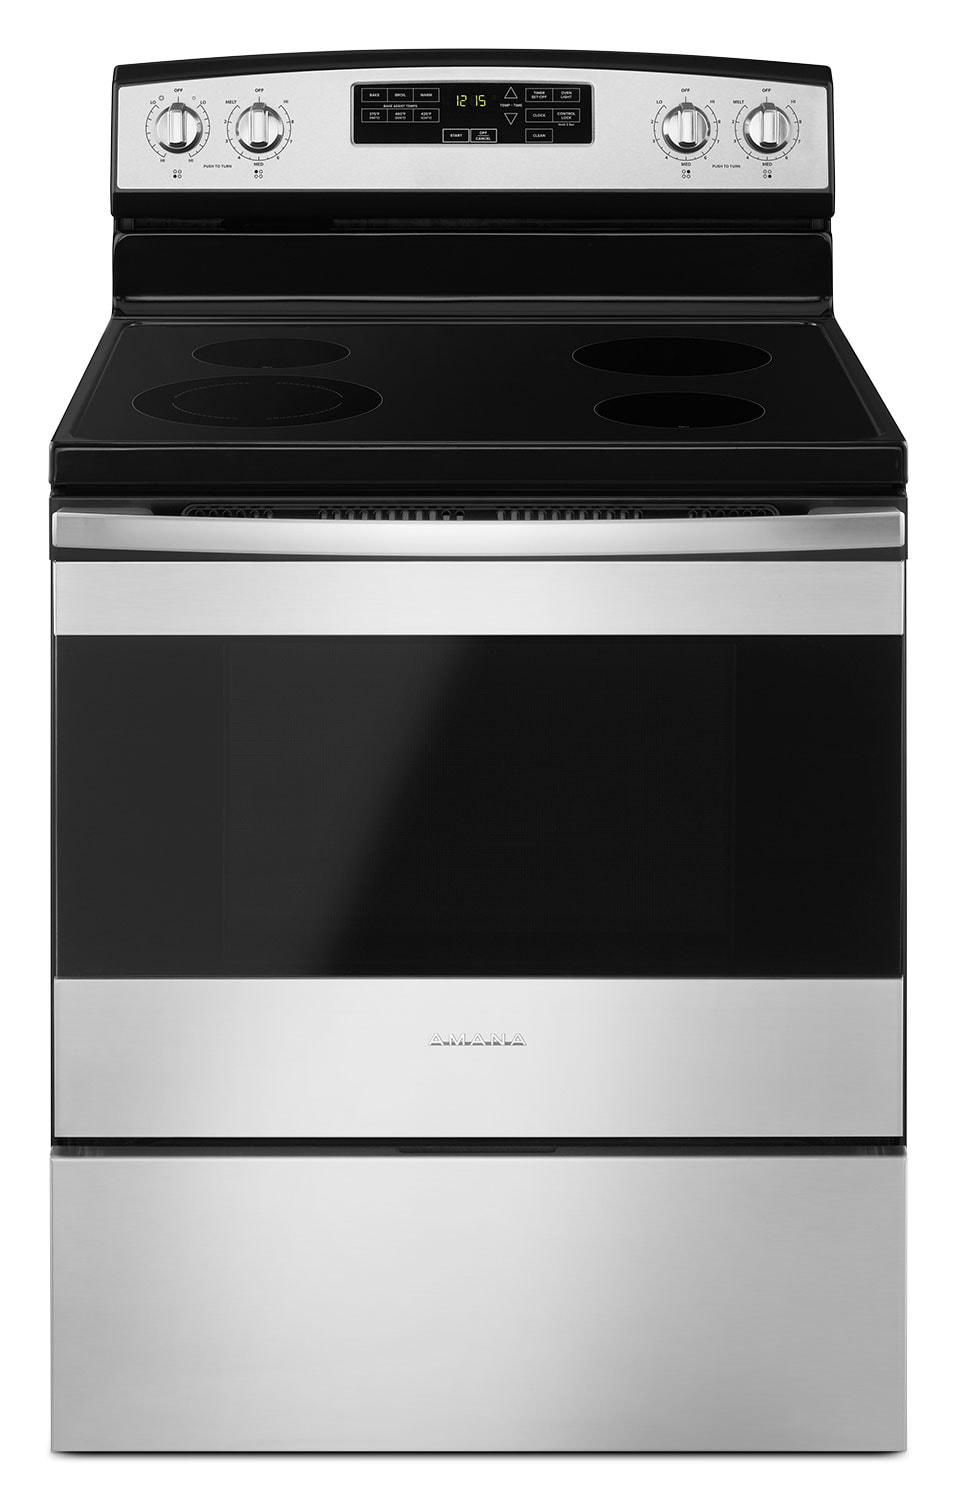 Amana 4.8 Cu. Ft. Freestanding Electric Range with Self-Clean – YAER6603SFS